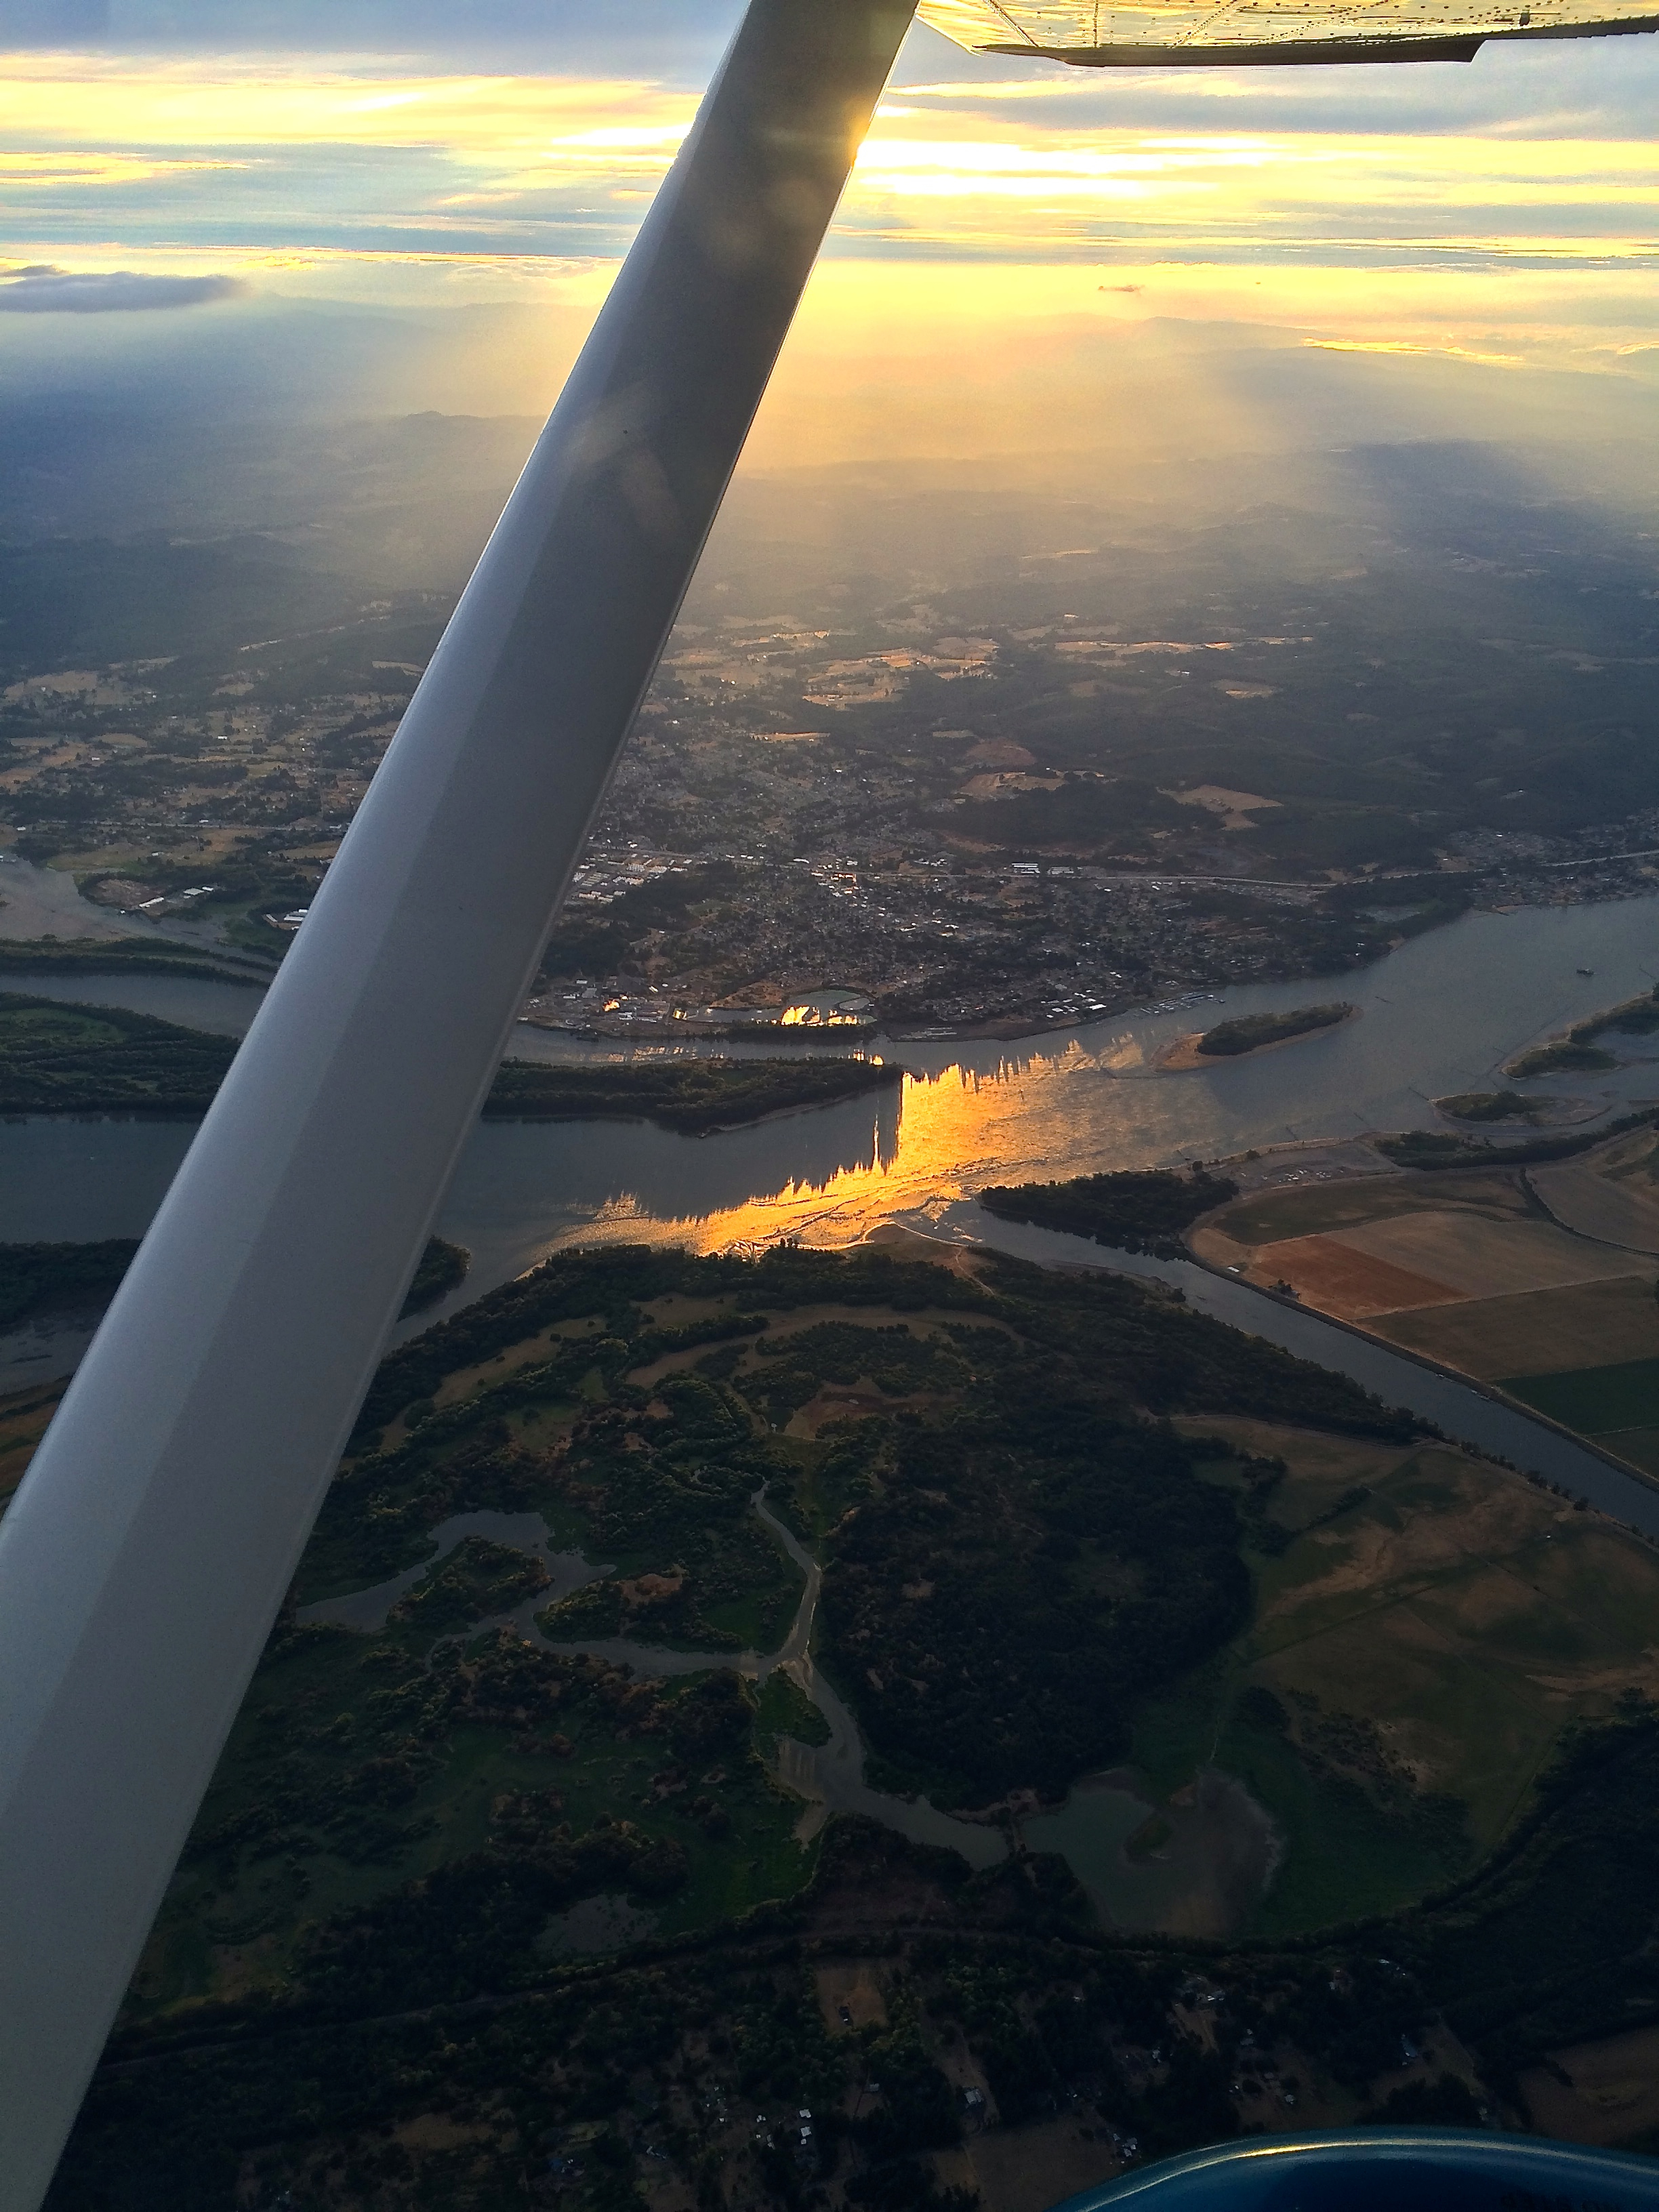 Photo of the town of St. Helens, Oregon and the Columbia River in the late afternoon sunlight.